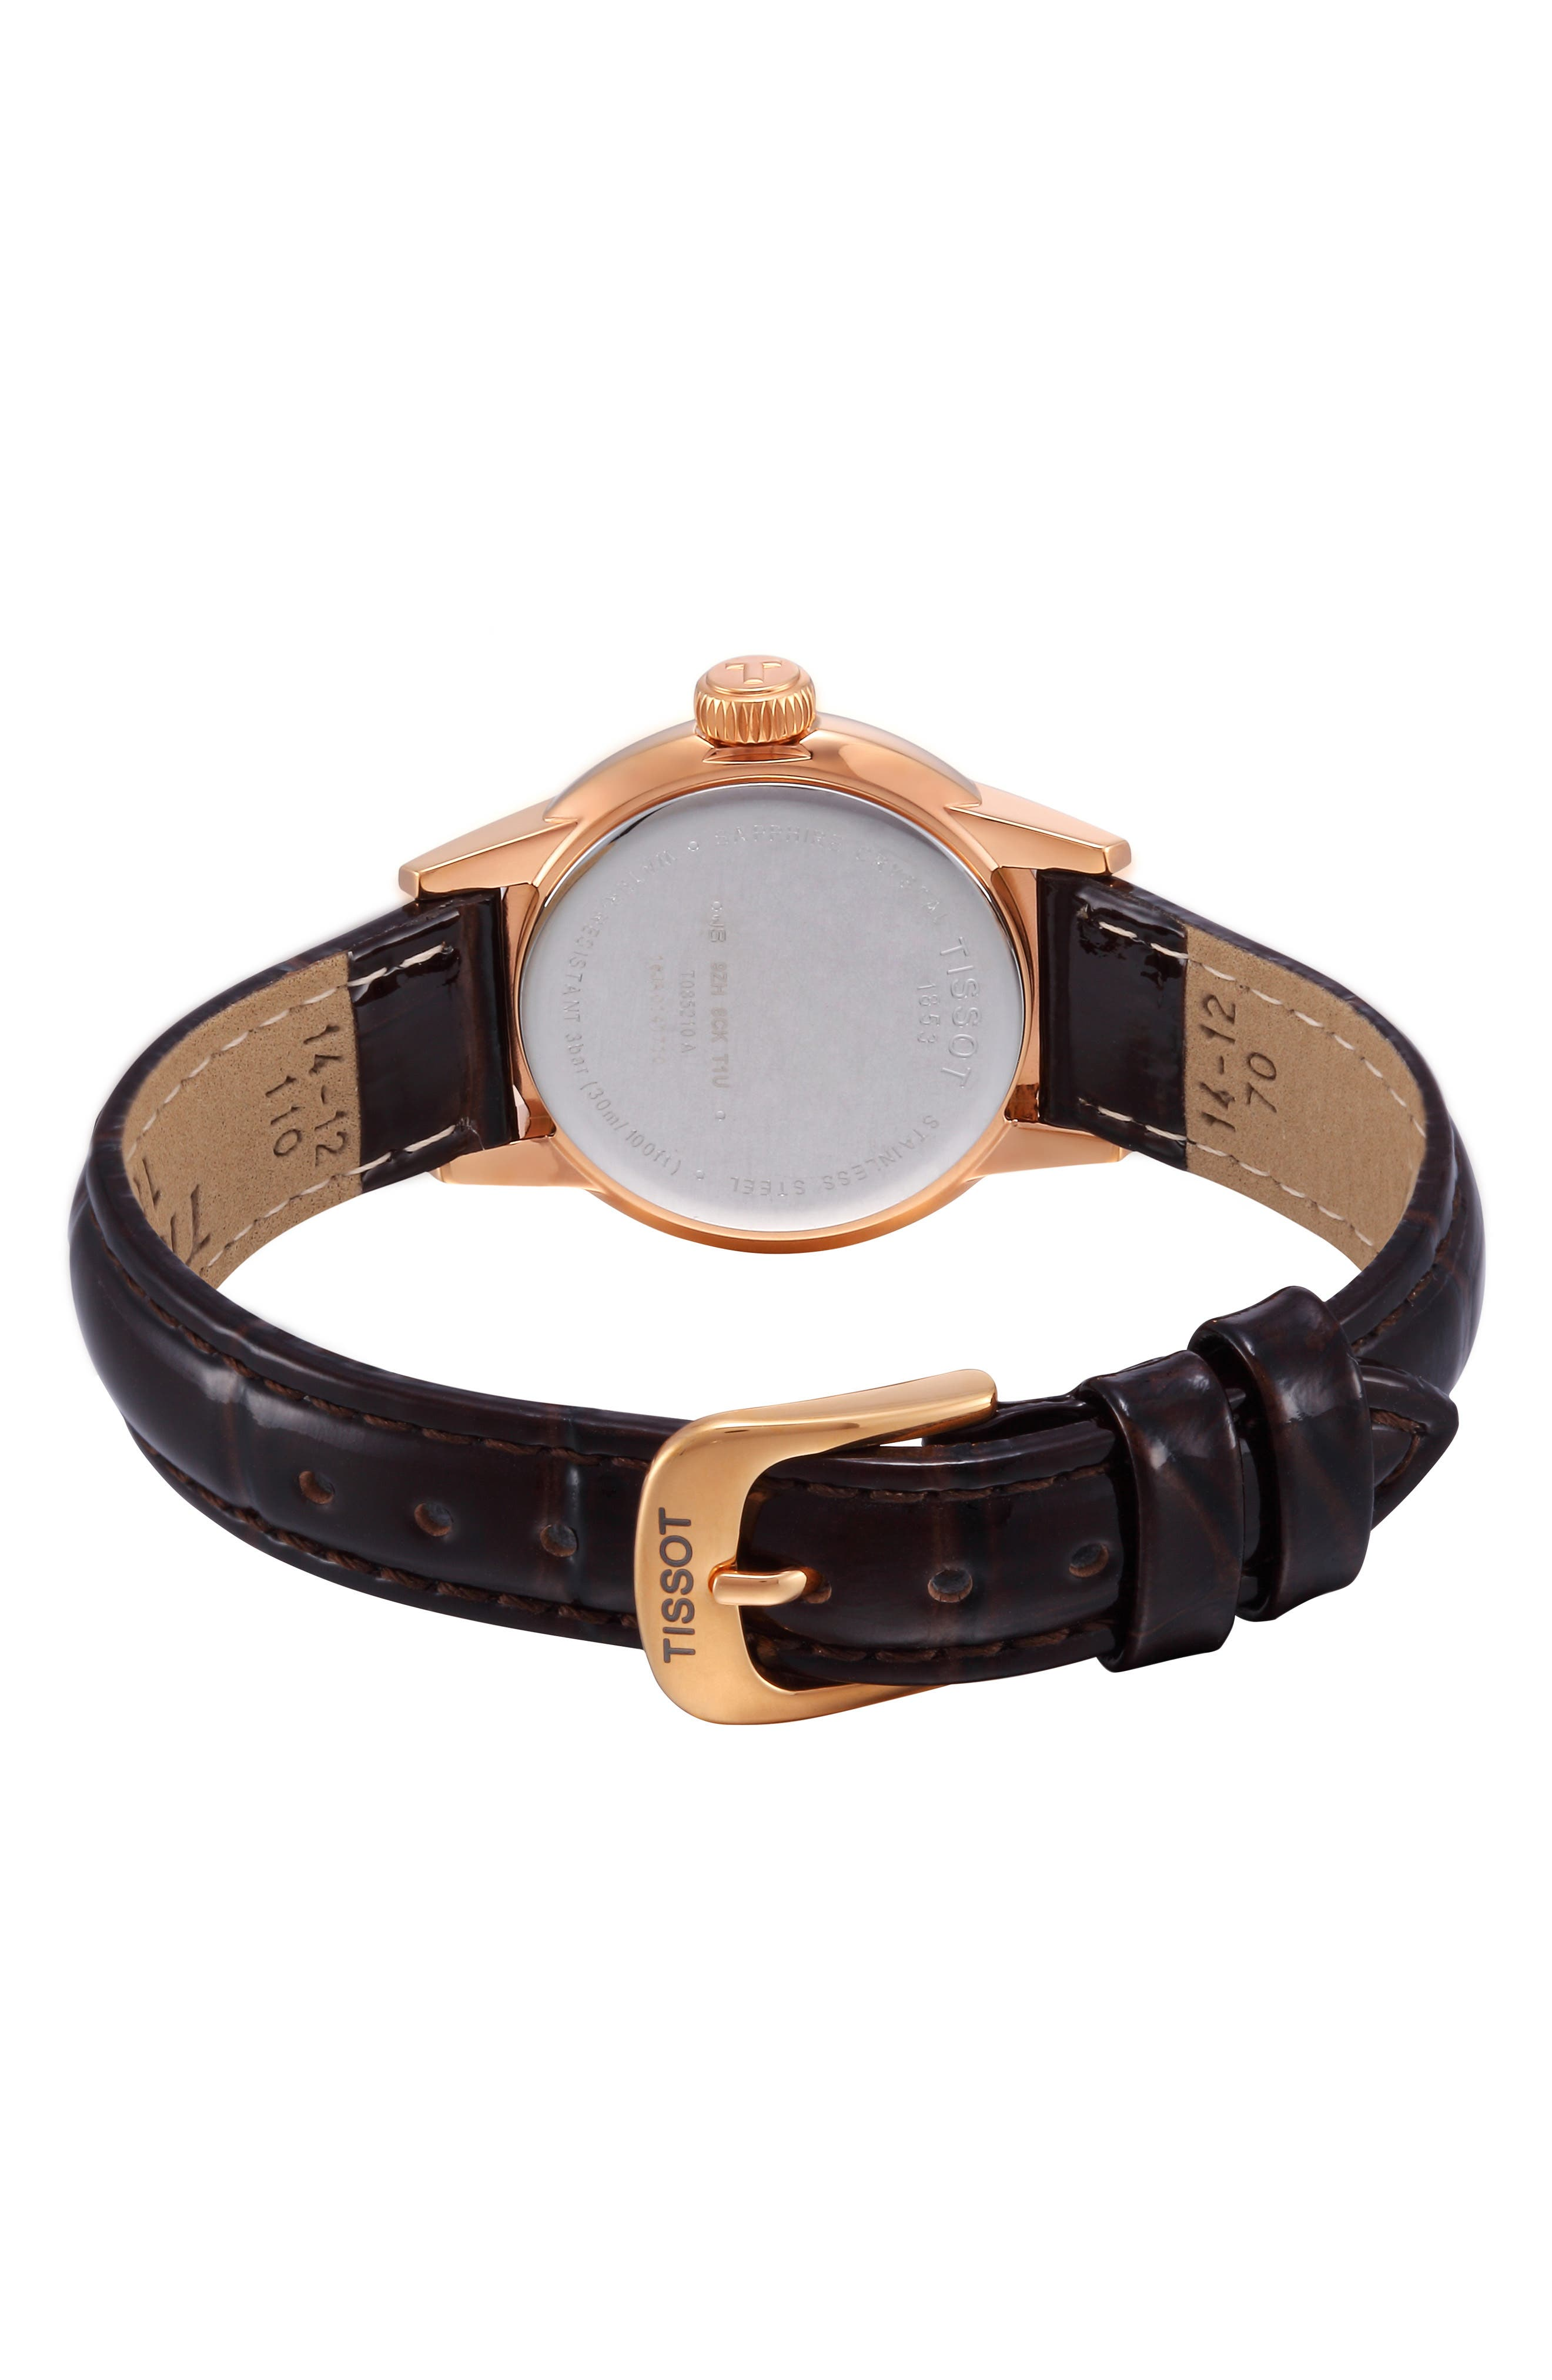 TISSOT, Carson Leather Strap Watch, 28mm, Alternate thumbnail 7, color, 201